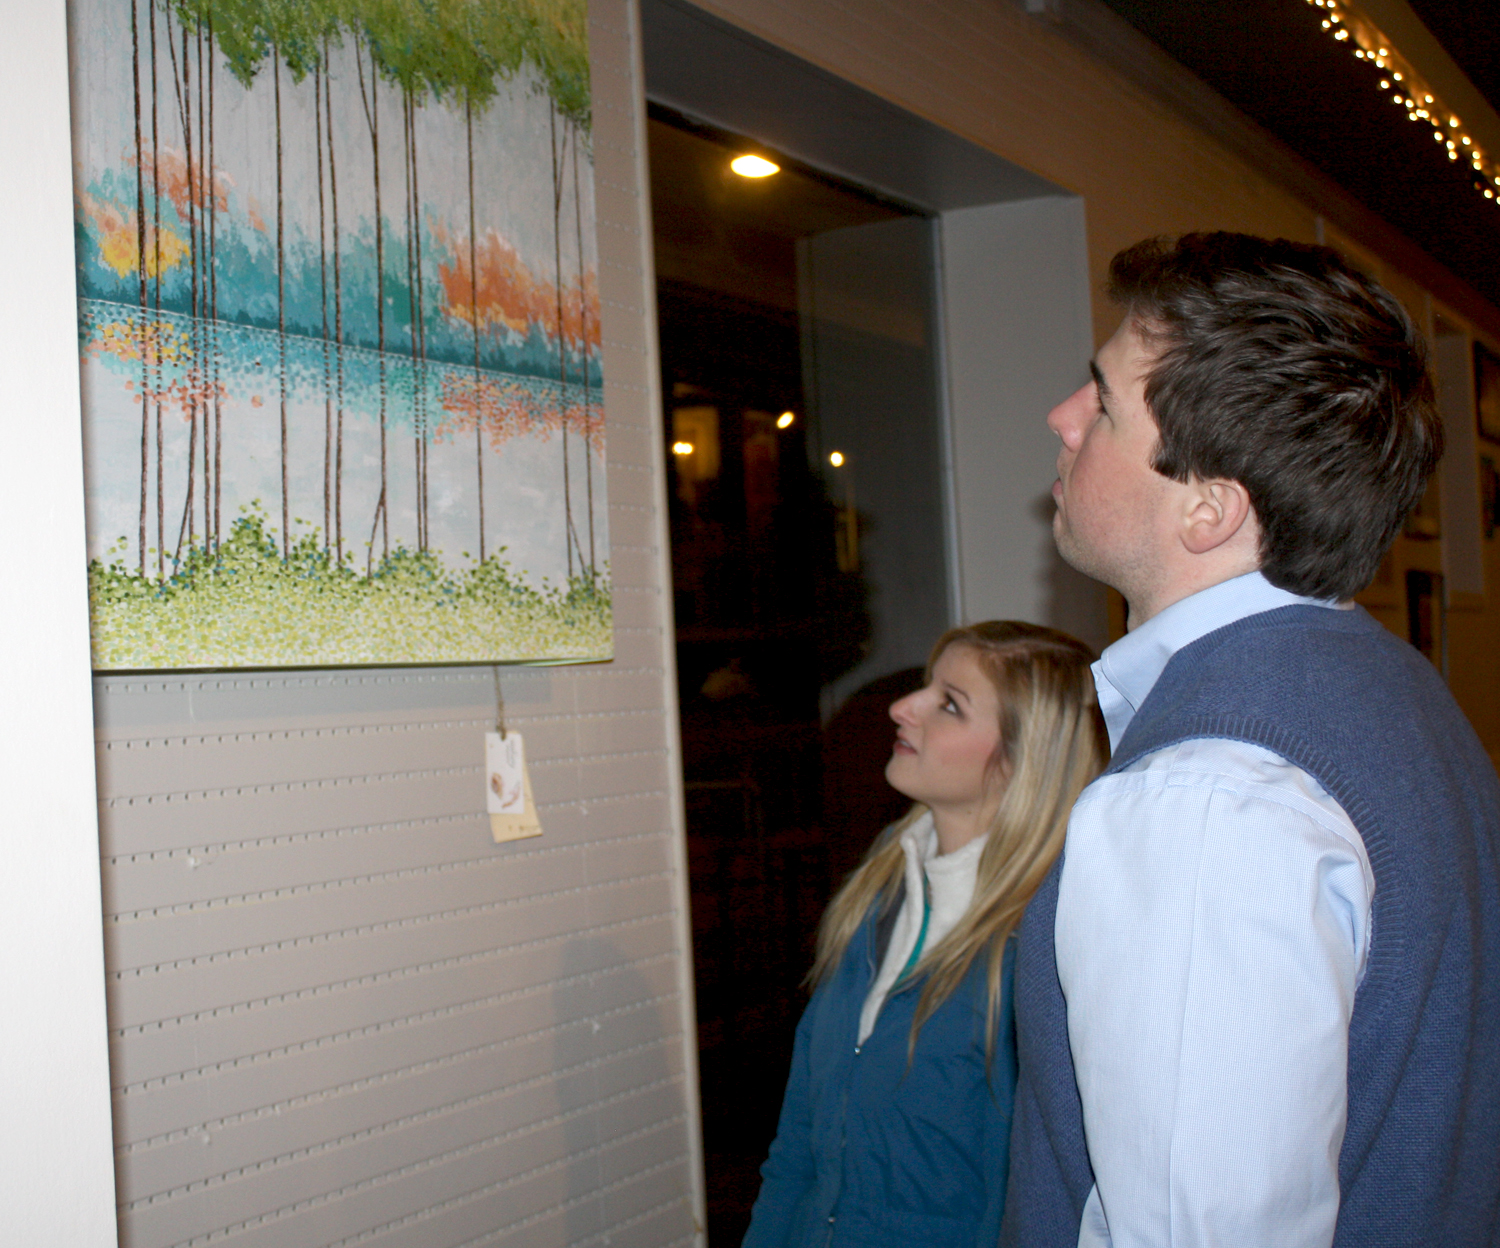 David Kennedy and Kate Rydzak view a painting at the Shelter on Van Buren during the Jan. 26 Oxford Art Crawl. Photo by Jeff McVay